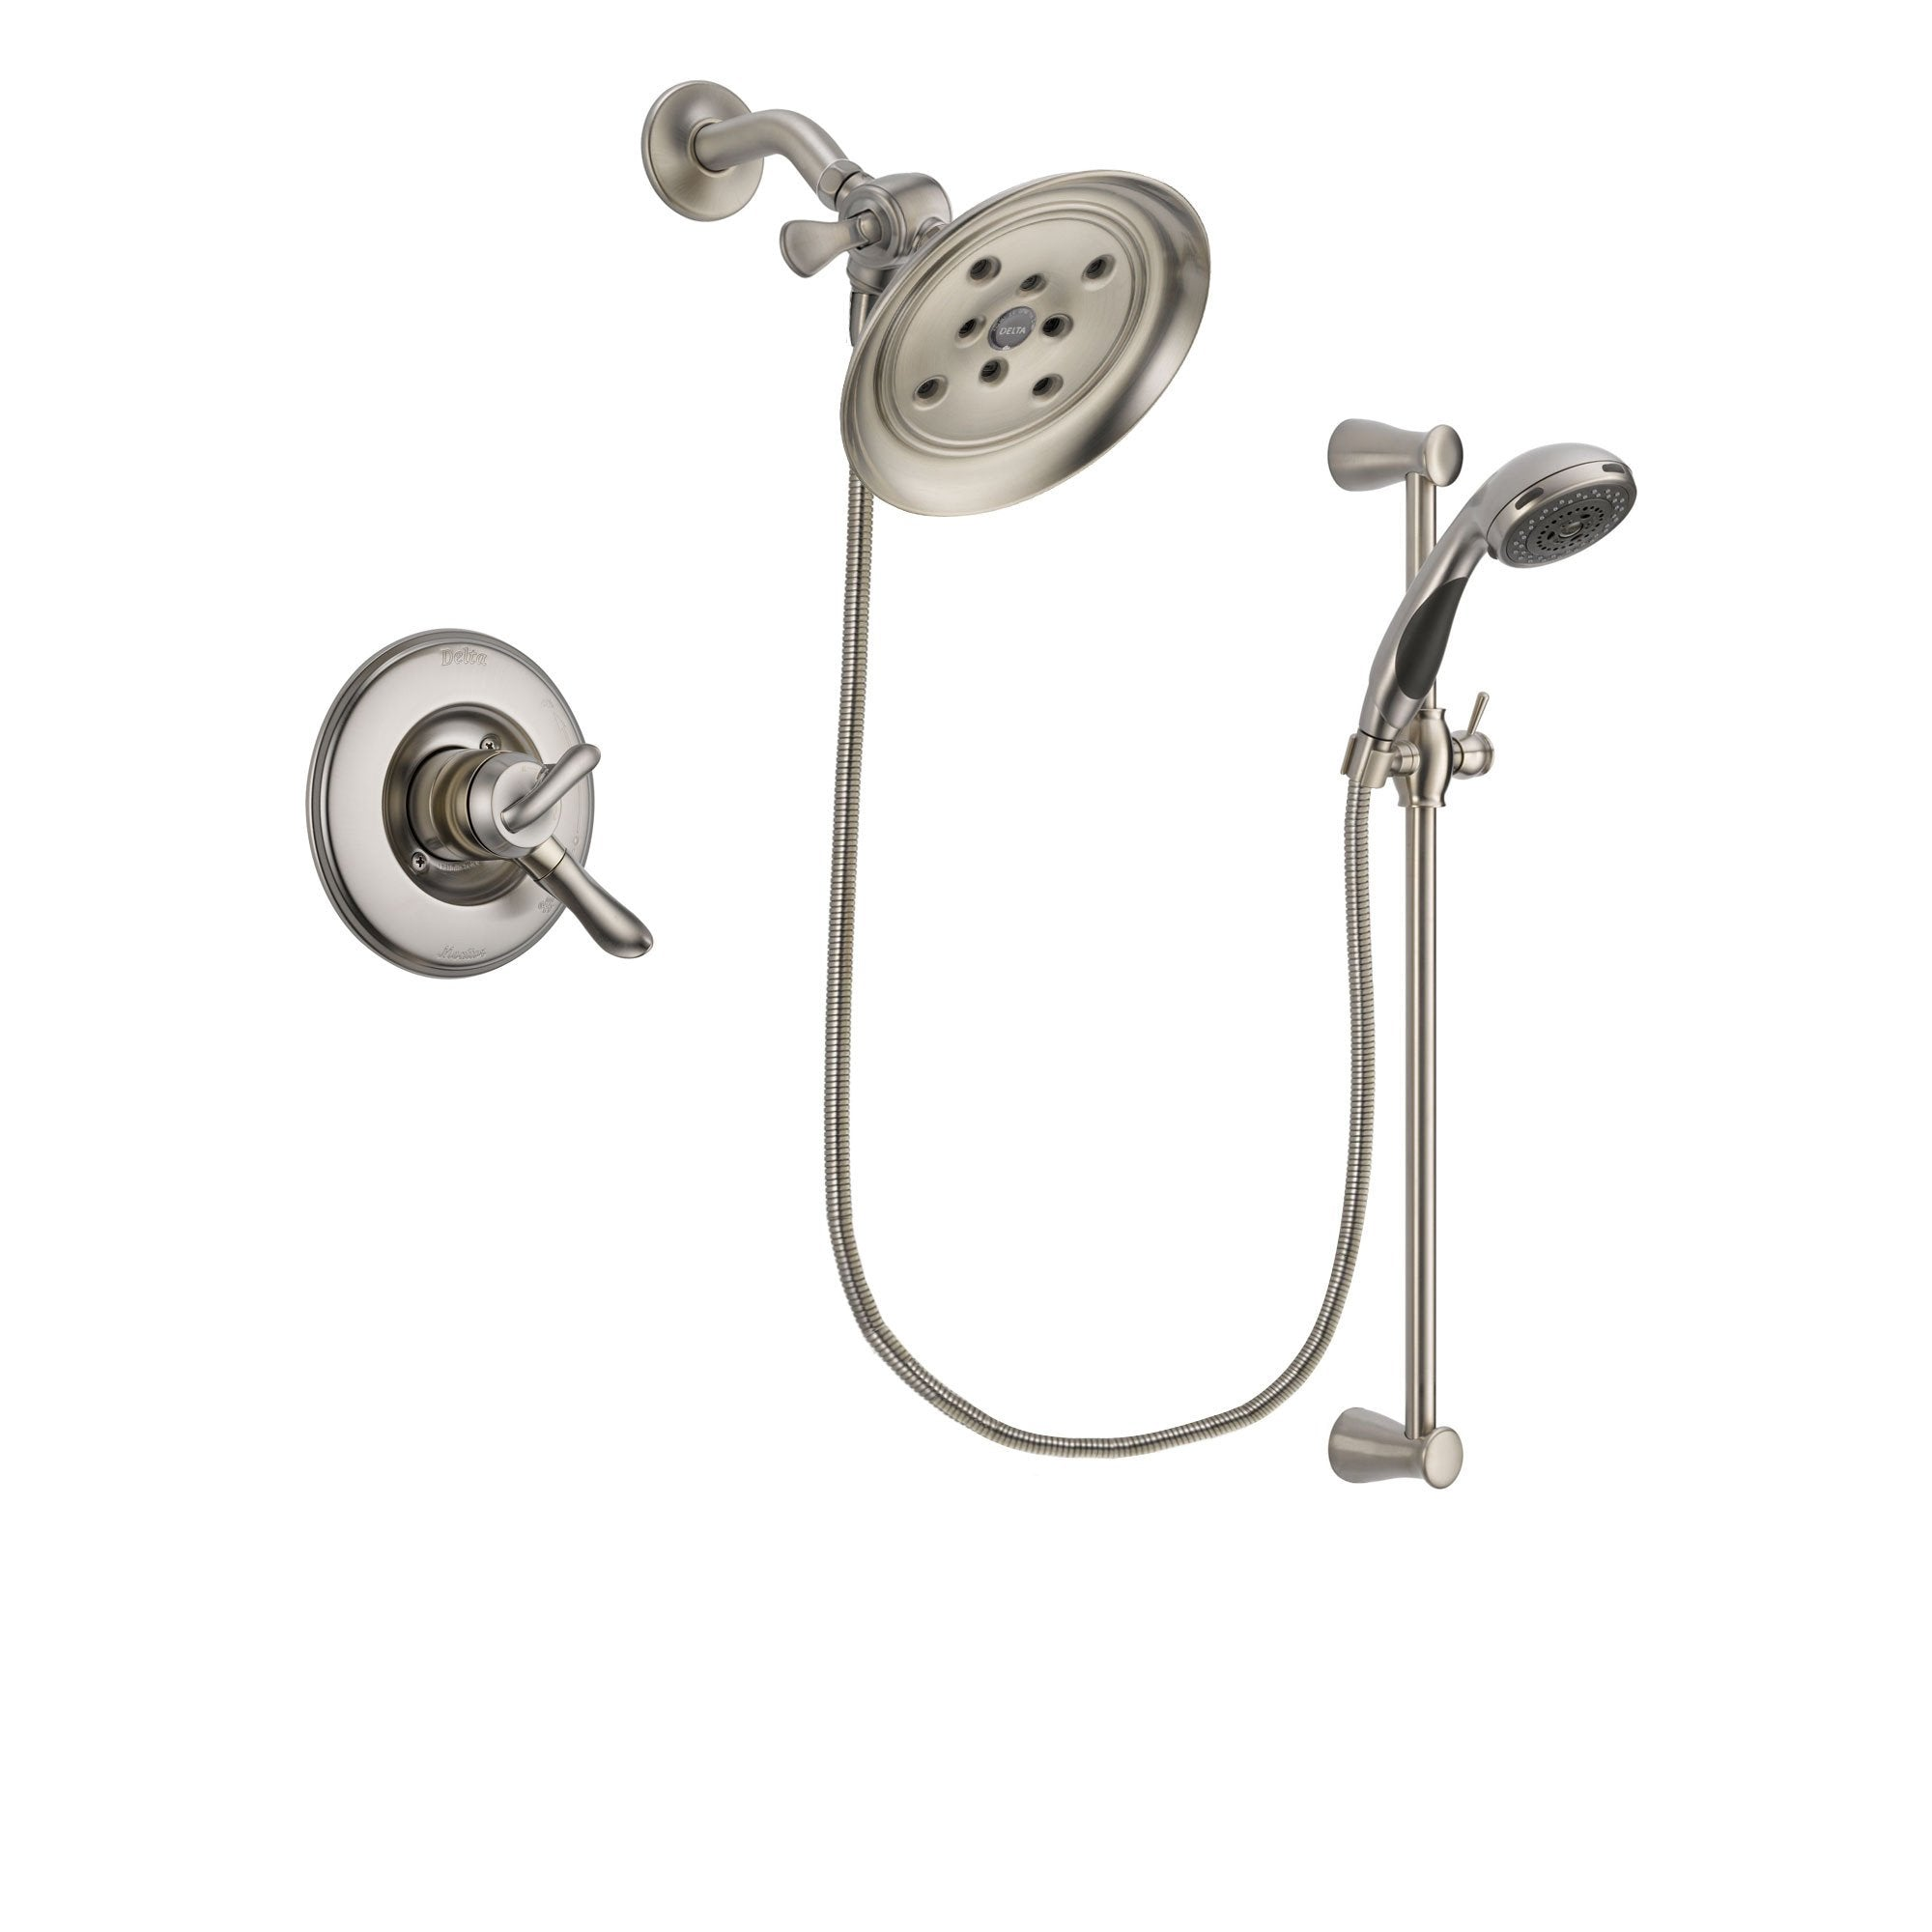 Delta Linden Stainless Steel Finish Shower Faucet System w/ Hand Spray DSP1612V